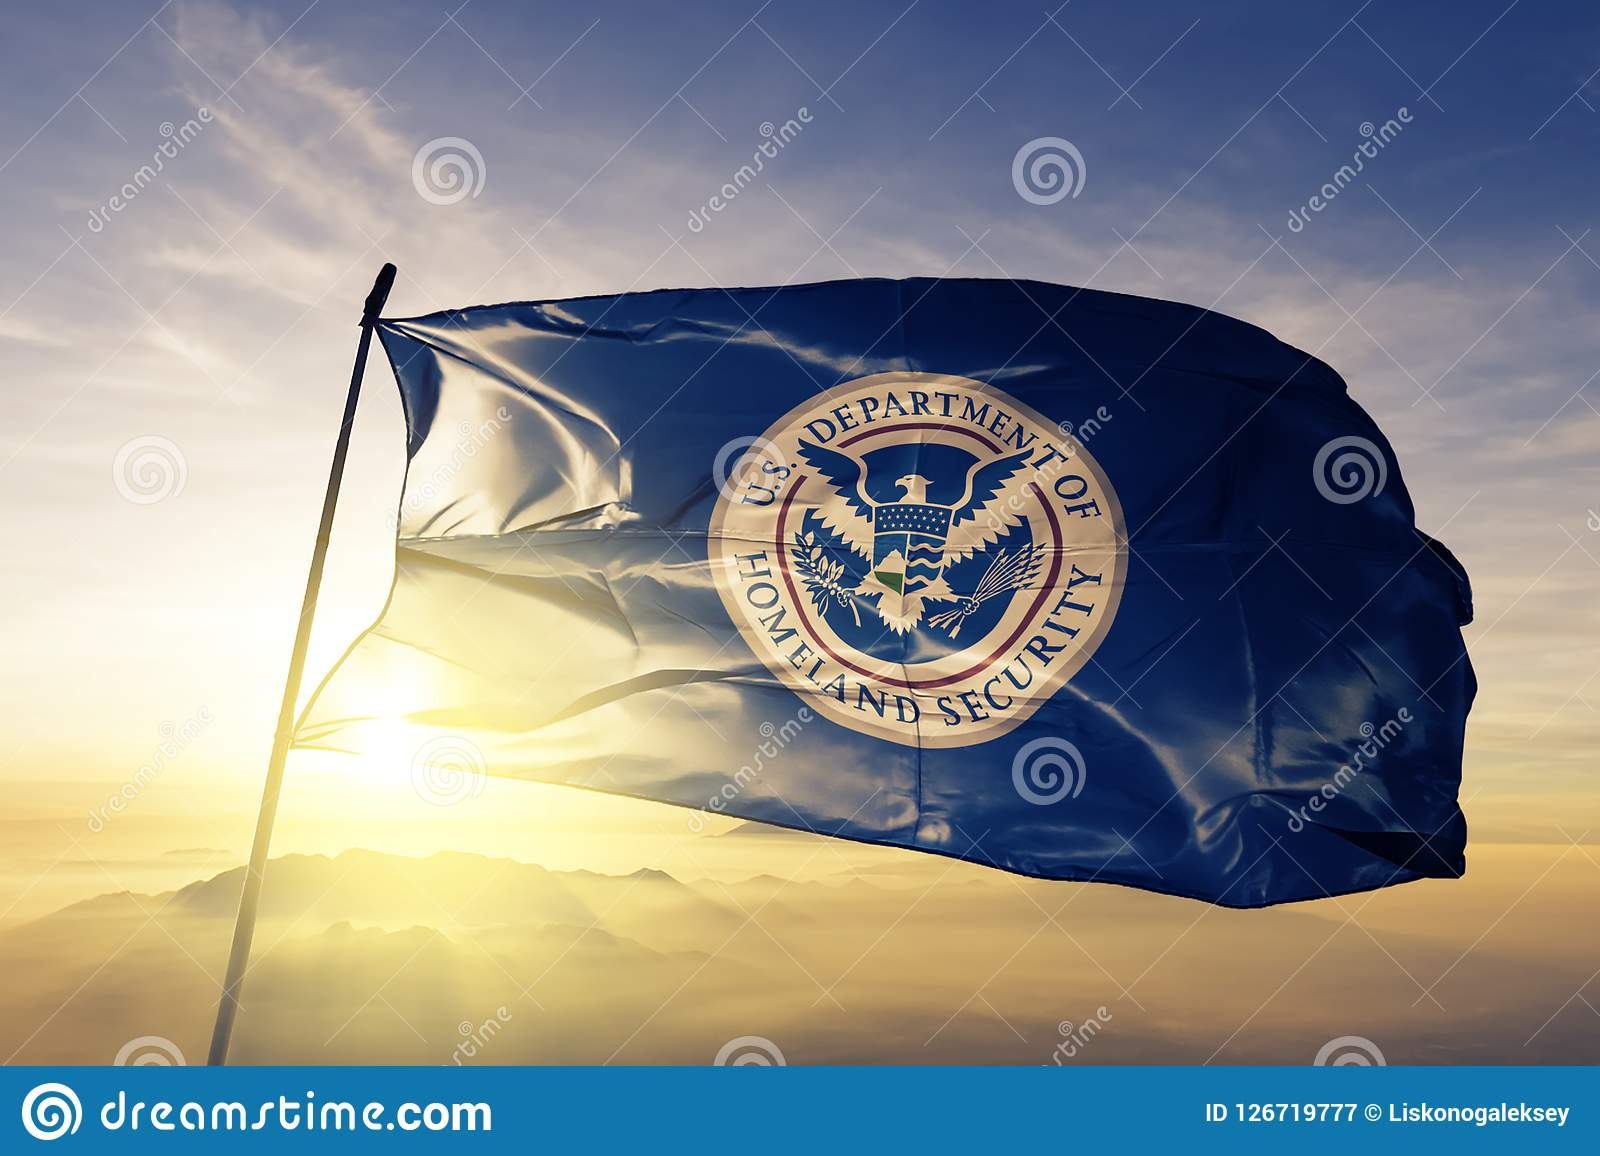 United States Department of Homeland Security flag textile cloth fabric waving on the top sunrise mist fog